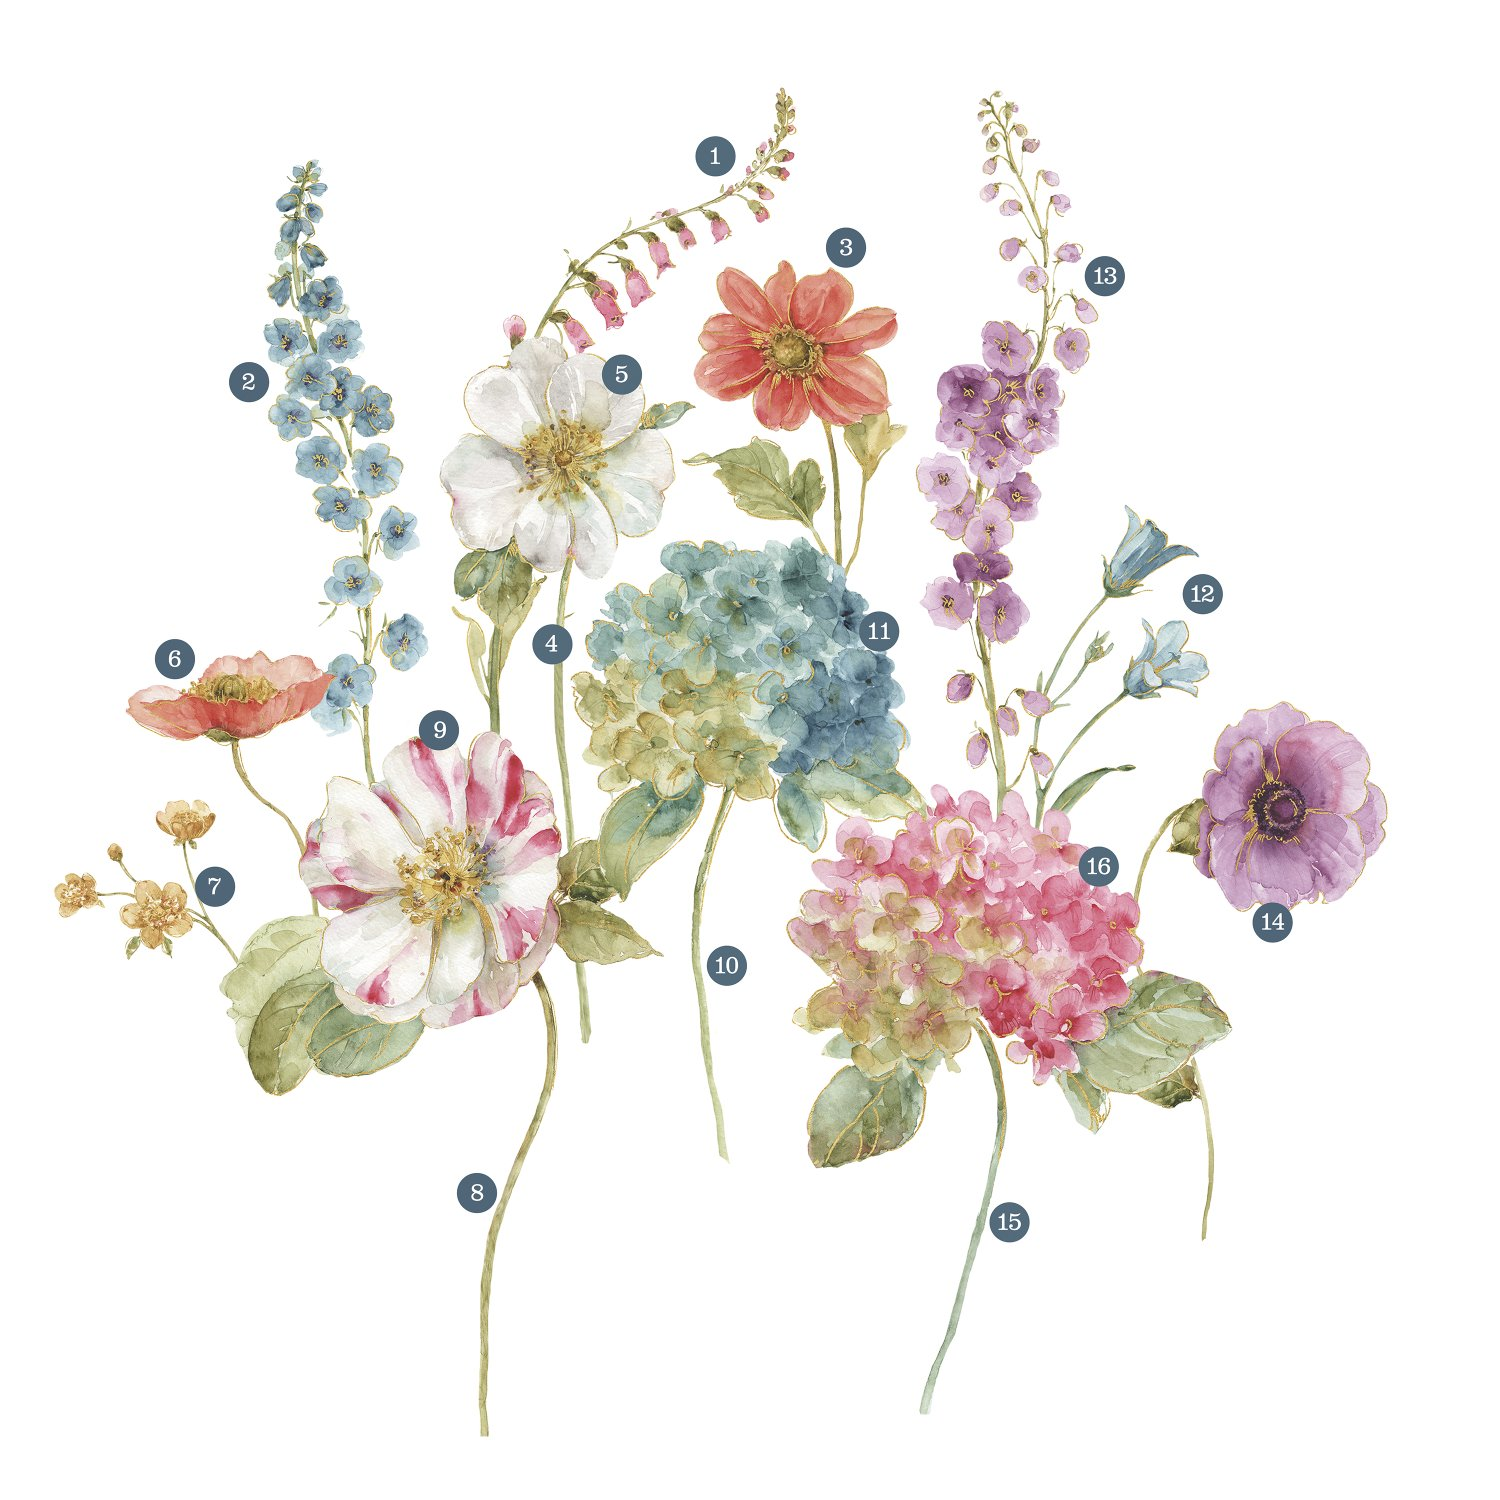 RoomMates Lisa Audit Garden Flowers Peel And Stick Giant Wall Decals by RoomMates (Image #2)